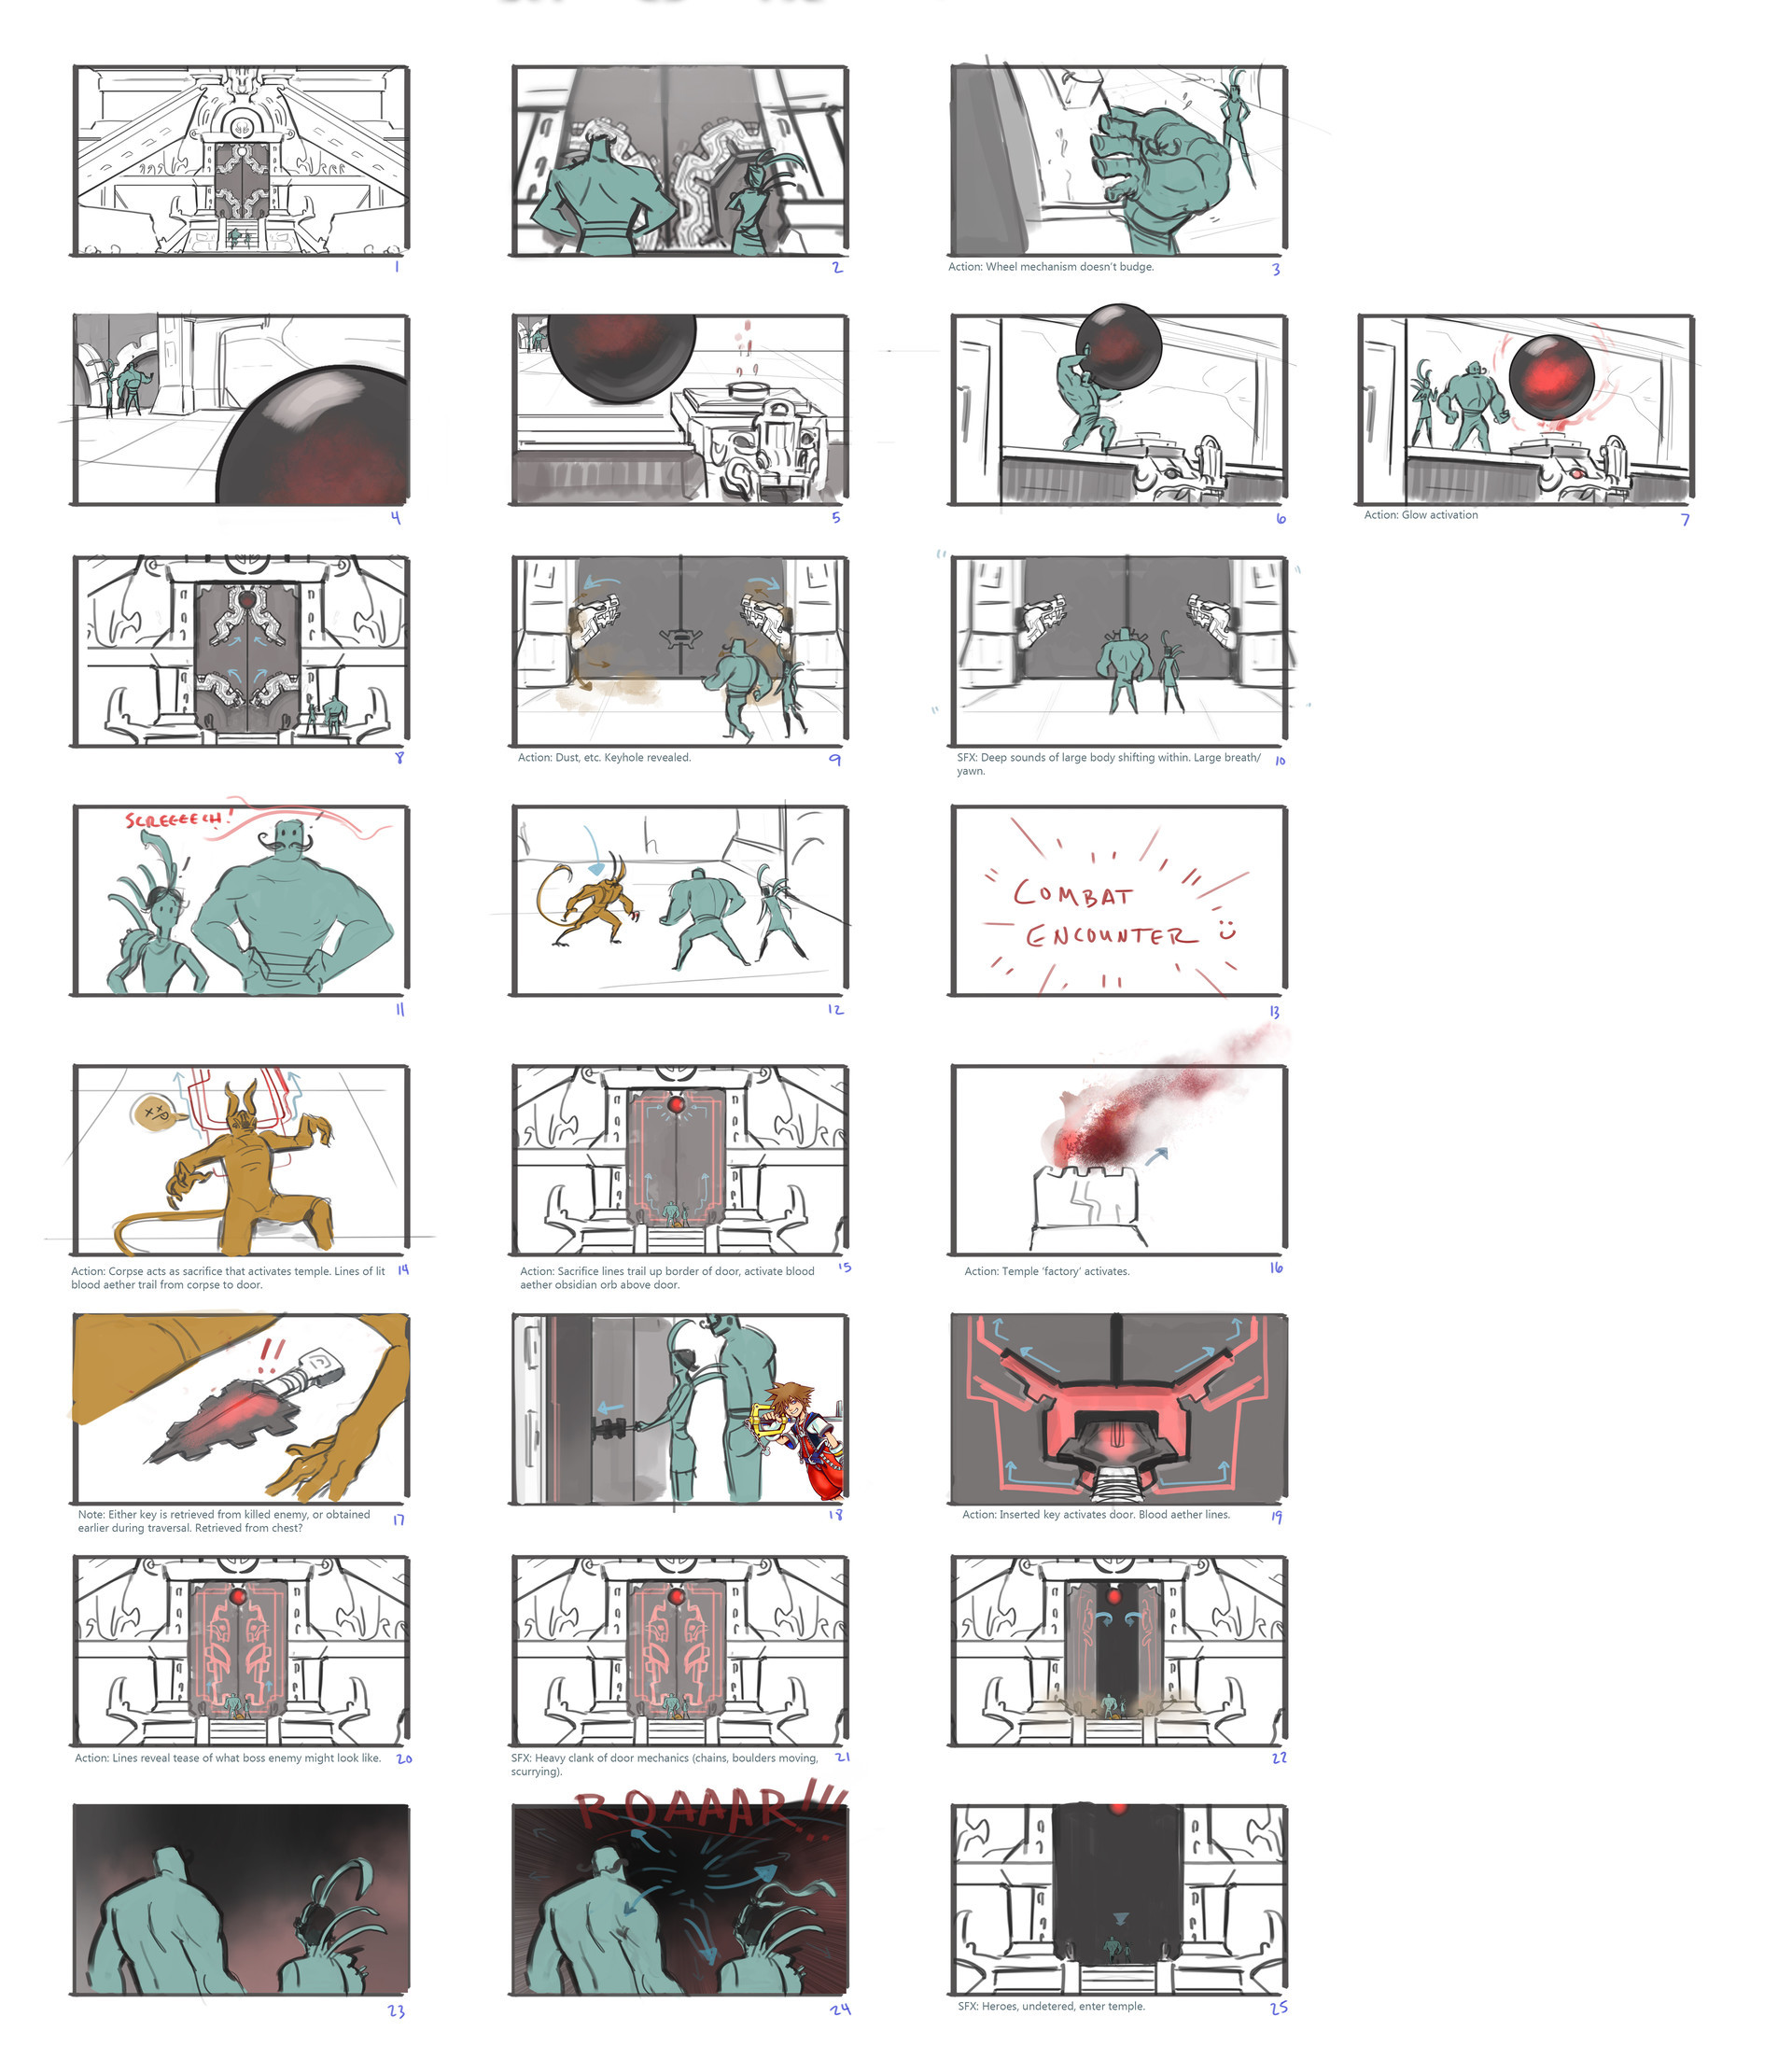 A quick 'n' dirty storyboard for opening a temple door. I overdid it a little with the process and eventually the entire scene was reduced to a quip between characters and simple key insertion. Still a very fun exploration!